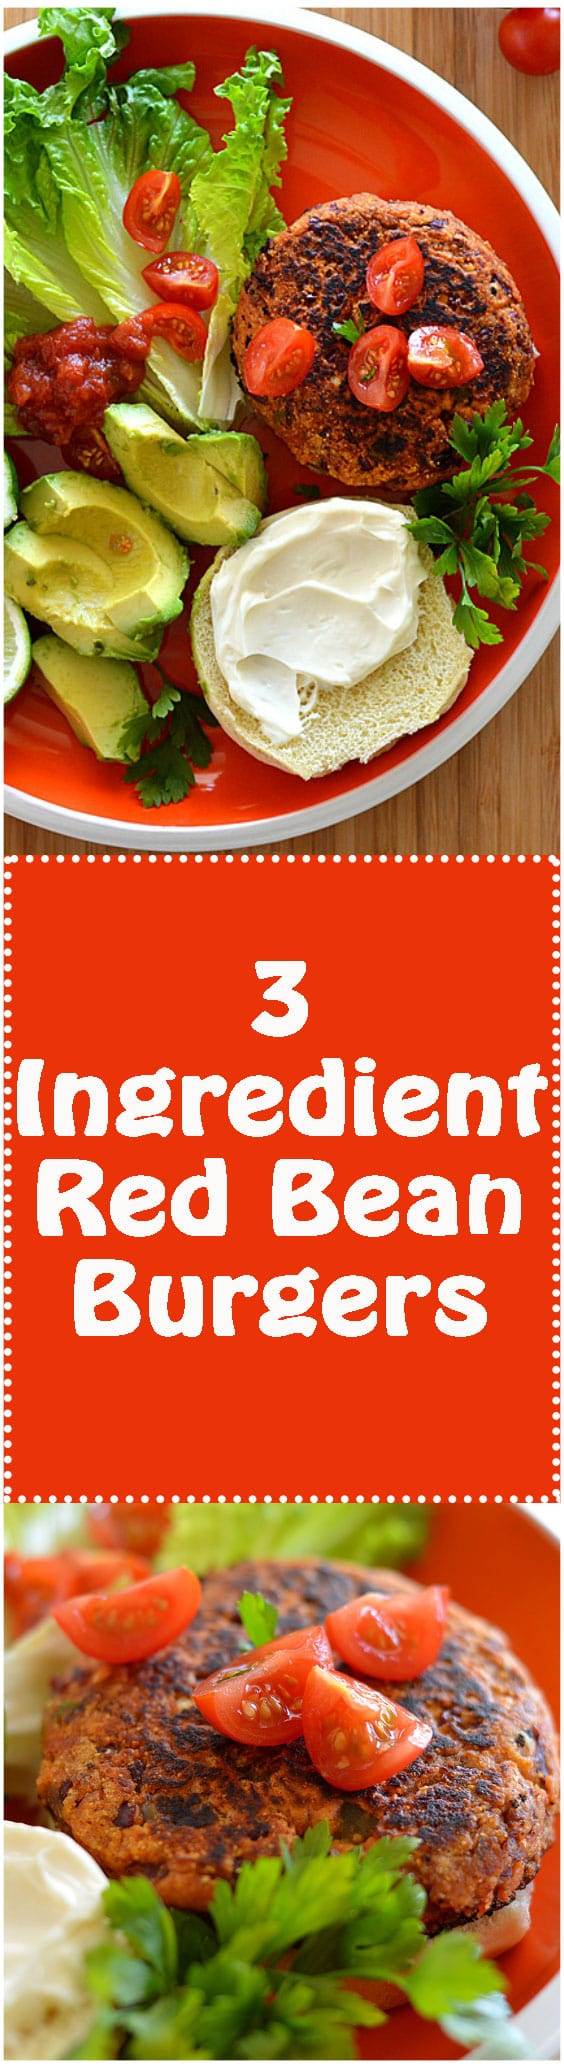 3 Ingredient Red Bean Burger